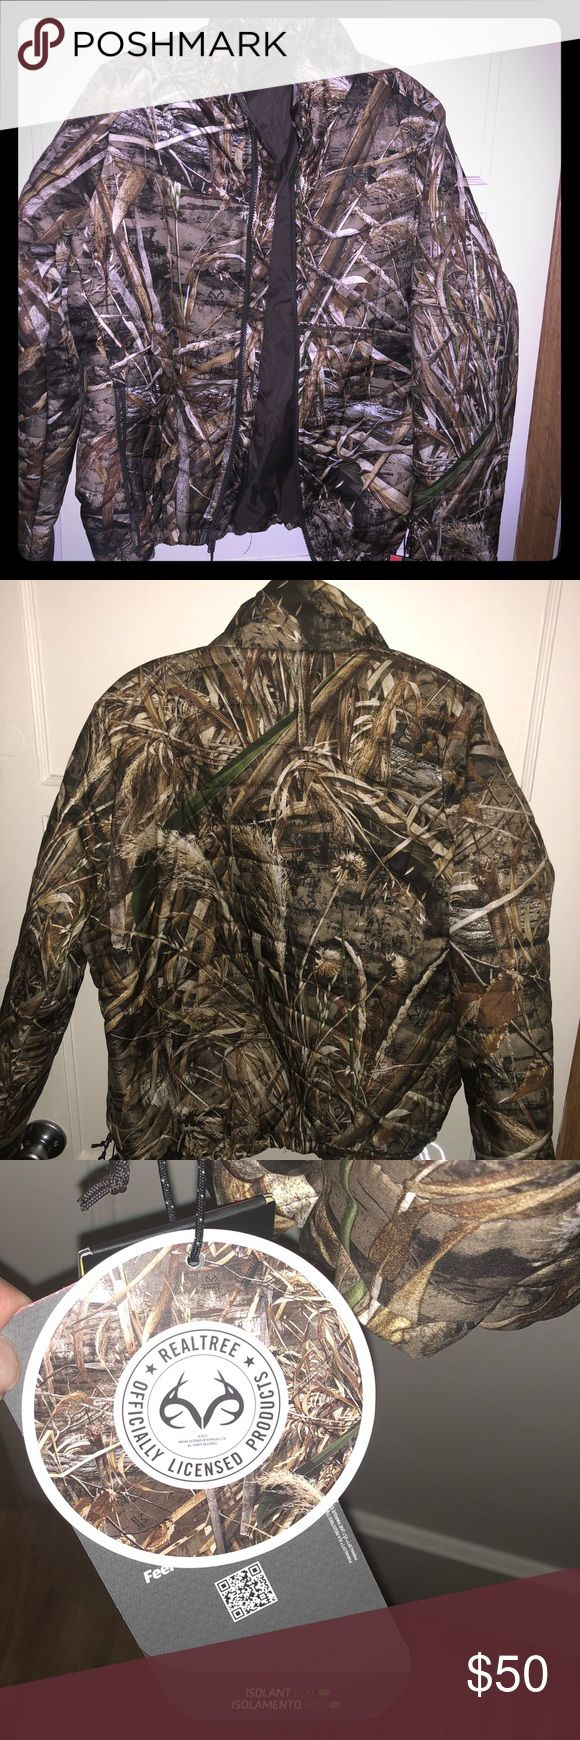 Under Armour camouflage jacket Under Armour camouflage puffer jacket. Never used! Under Armour Jackets & Coats Puffers